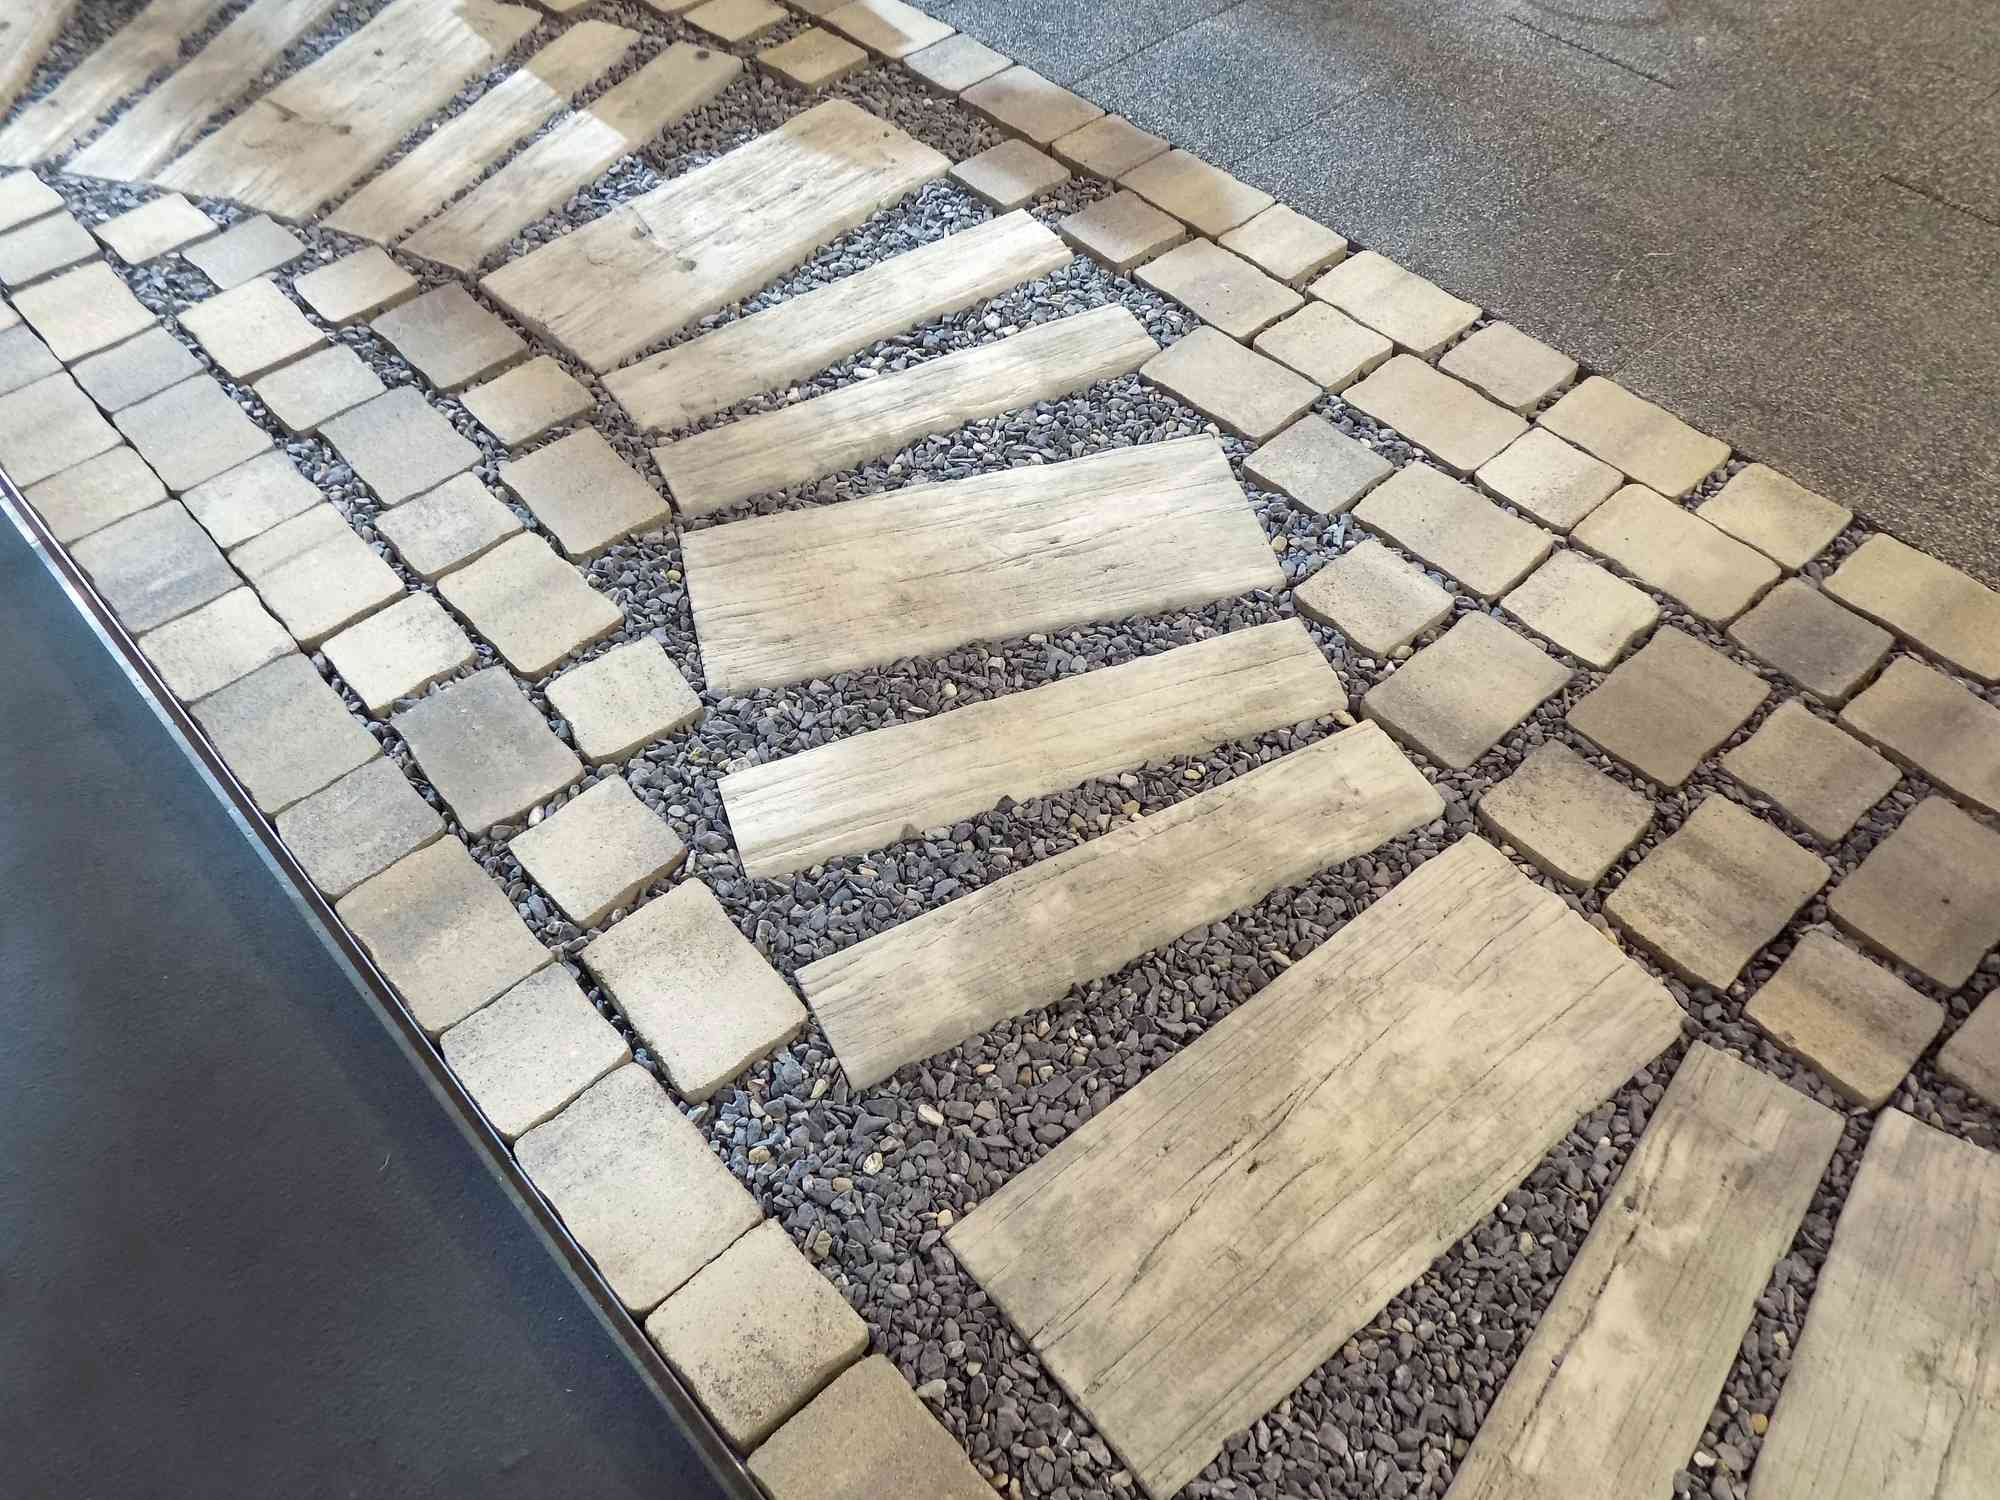 A garden walkway made with pavers, gravel and wood slabs.